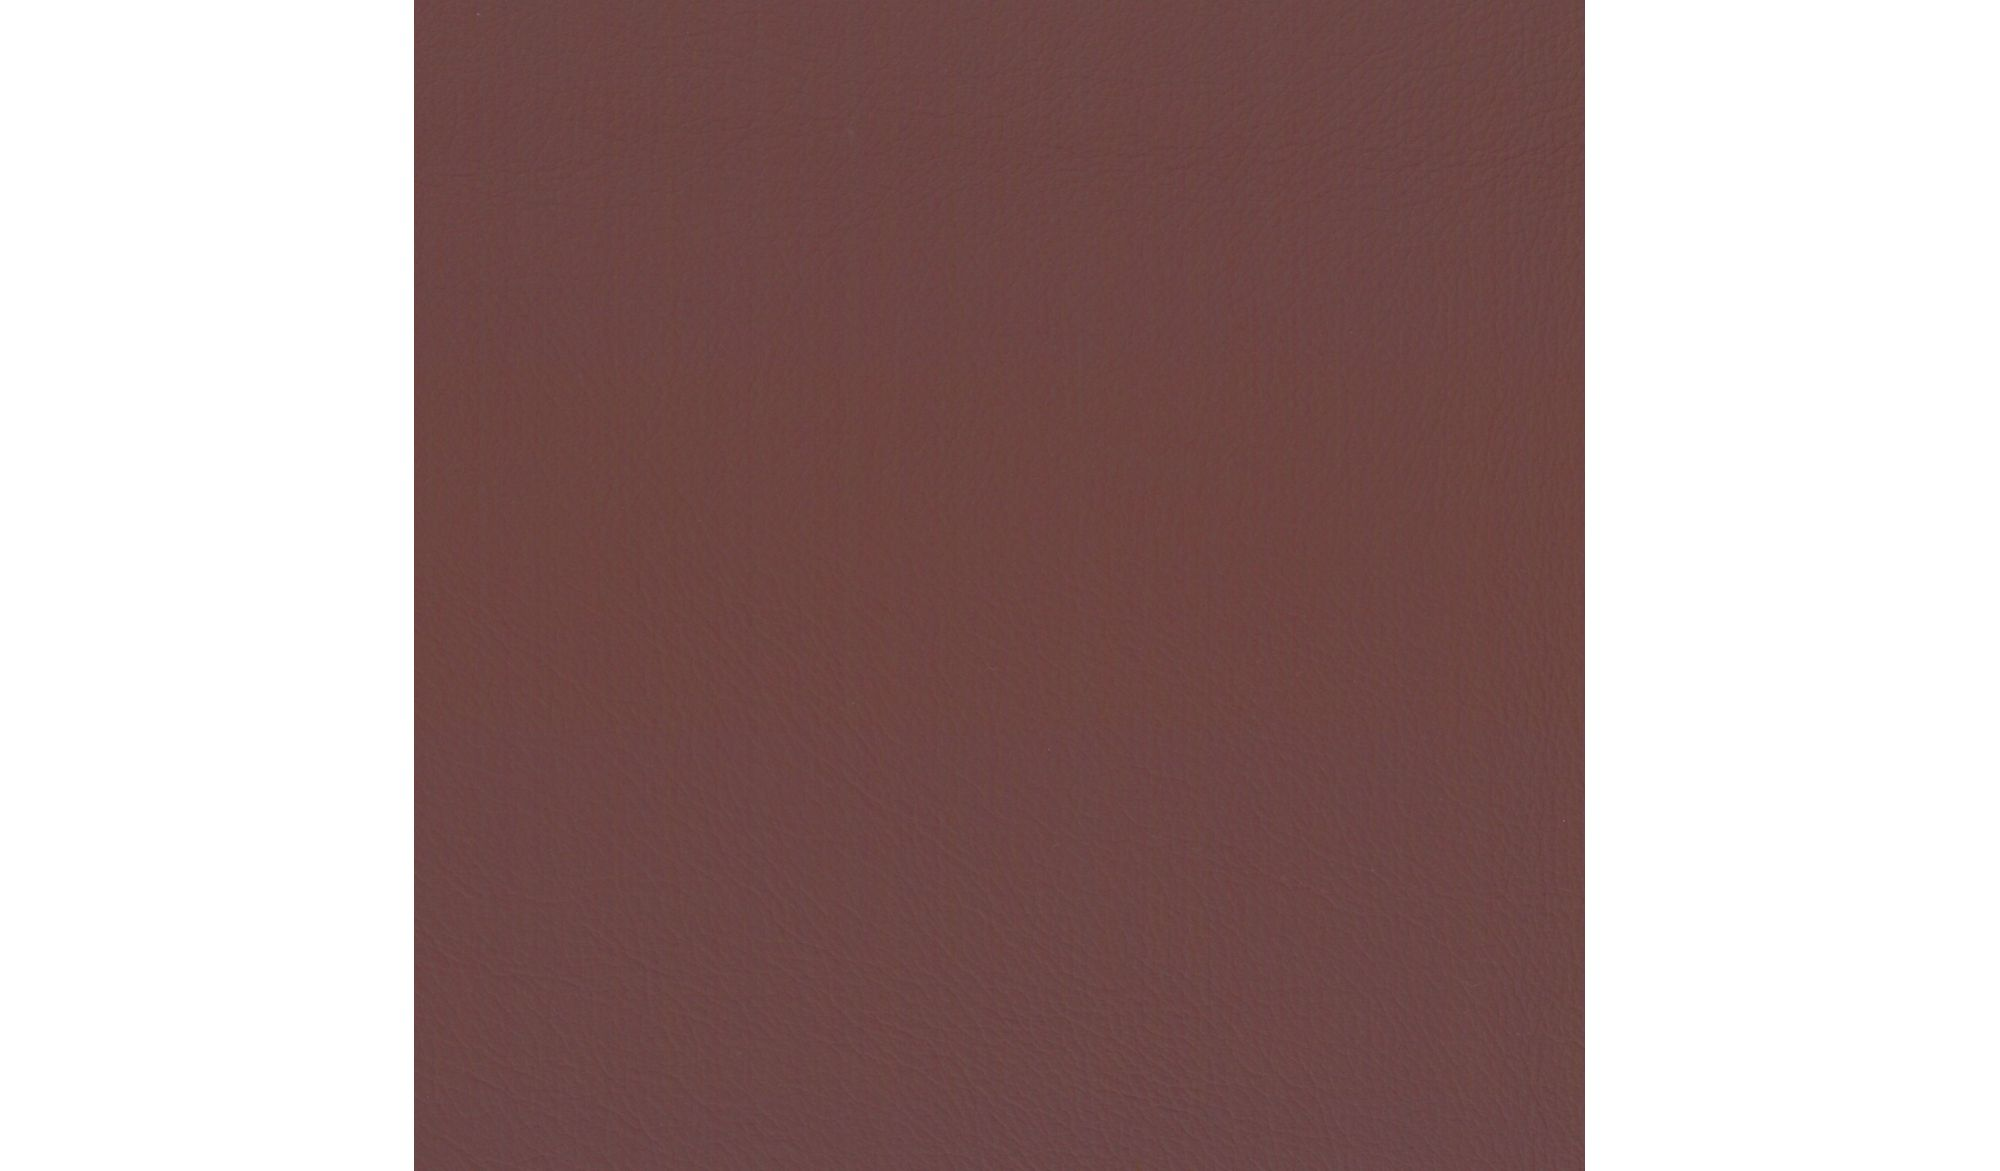 SKÓRA MAMMUT Bordeaux 25509 - Leather alt_skory_kolor_bordeaux 25509 Upholstery IMO Plain - Colour